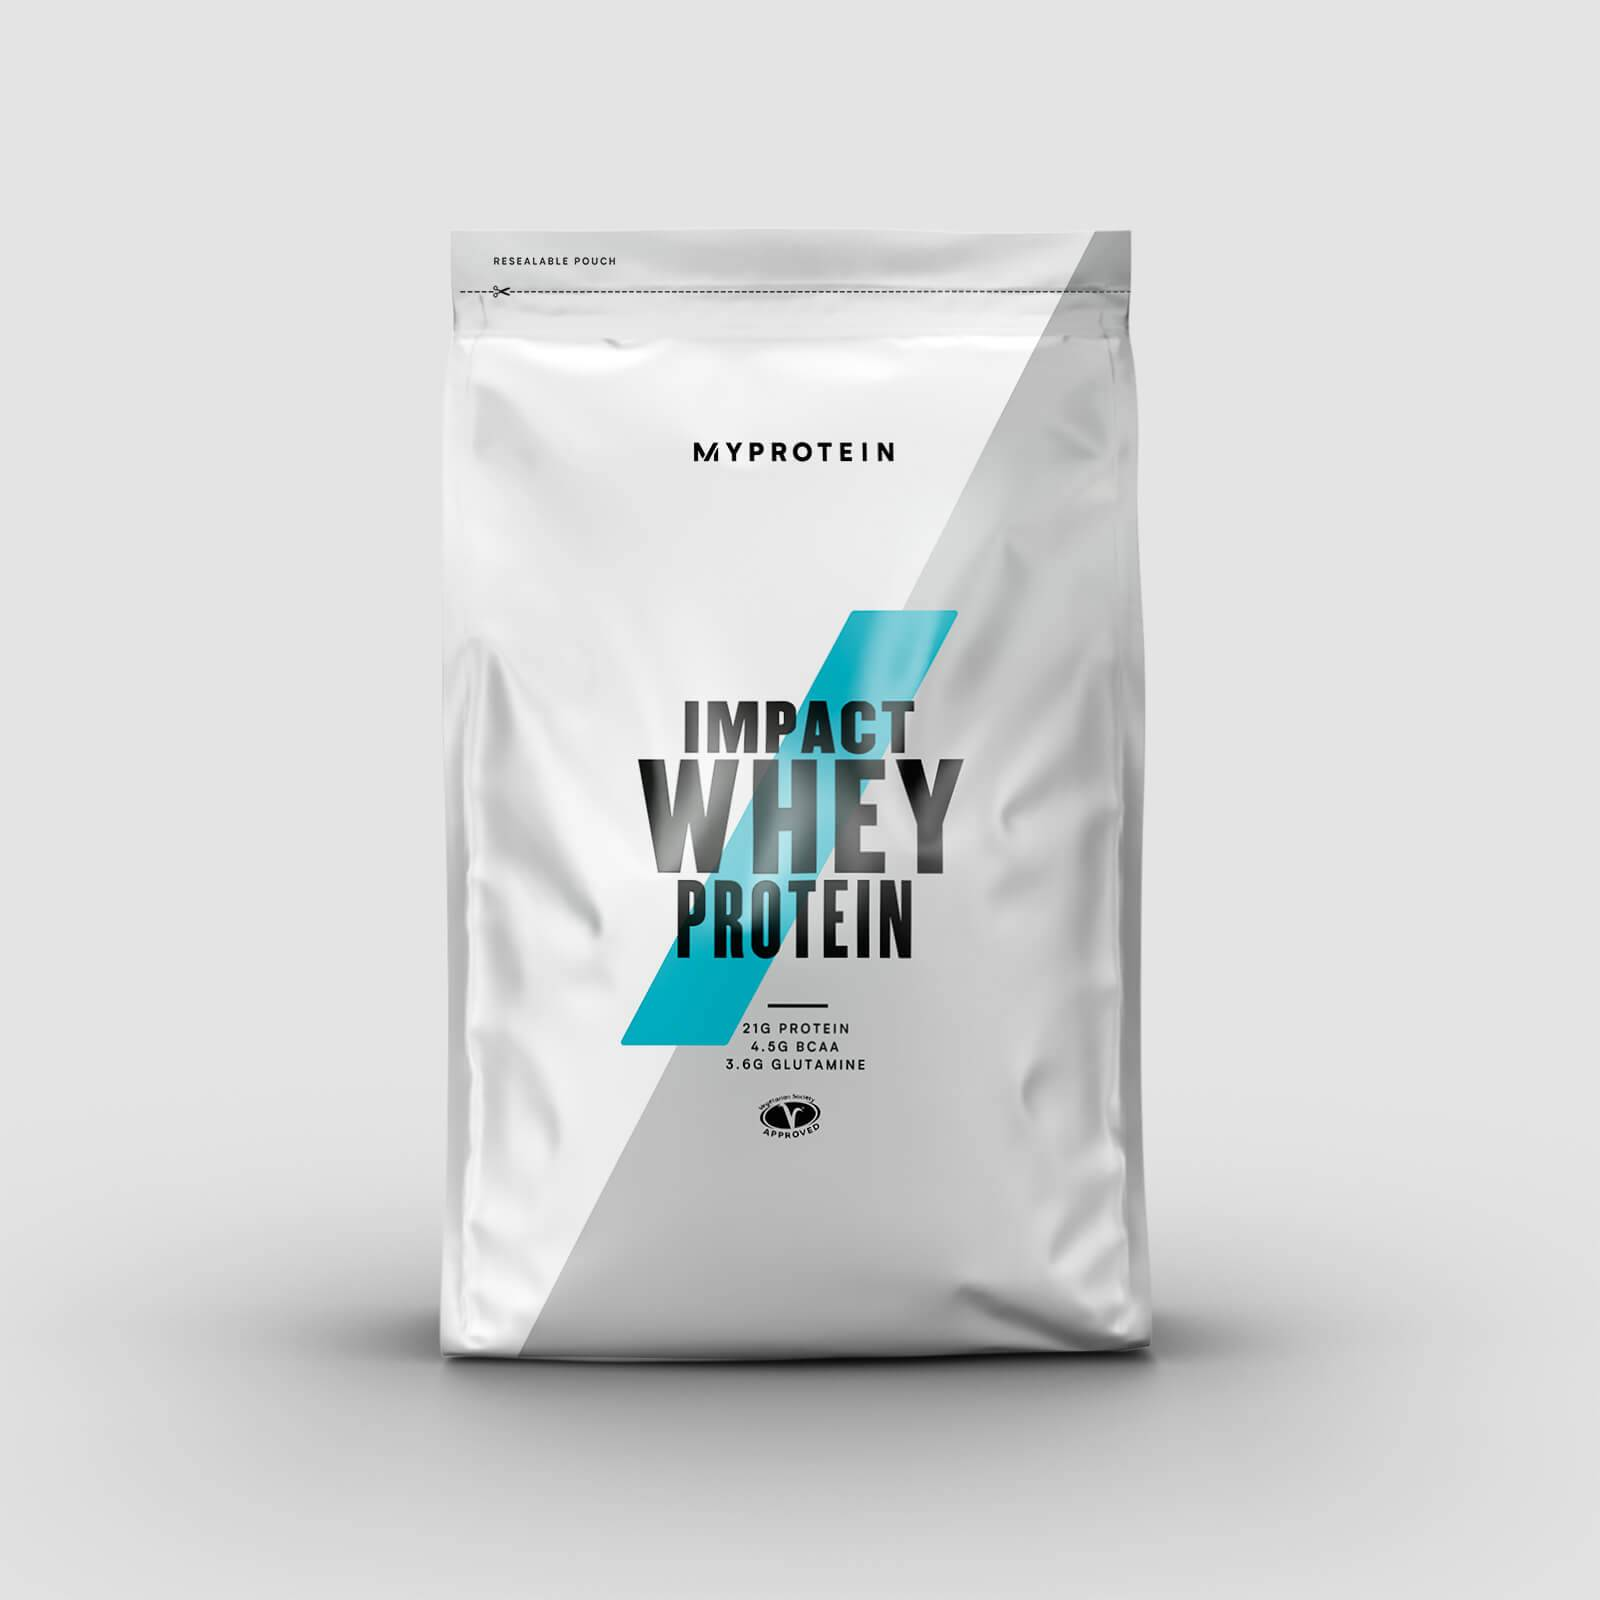 Myprotein Impact Whey Protein - 1kg - Chocolate Peanut Butter - New and Improved